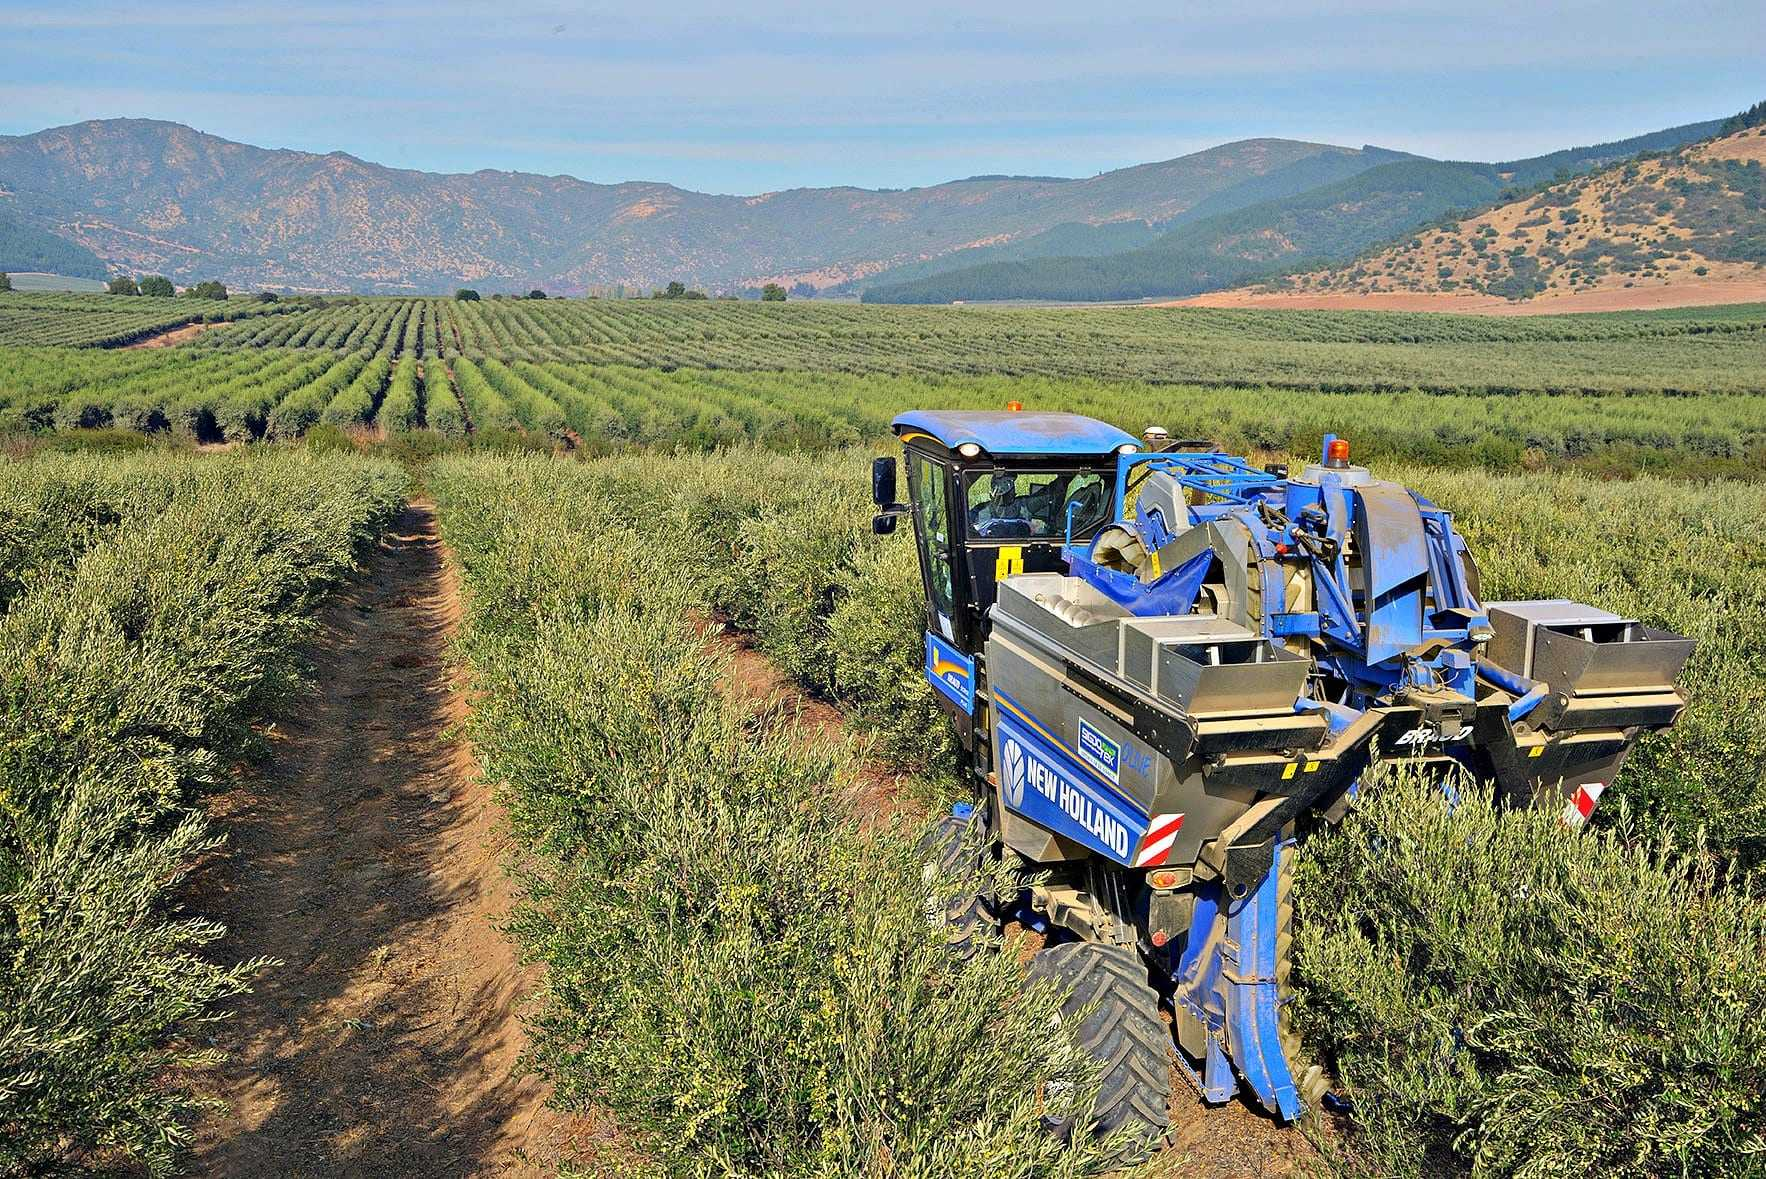 building-chilean-identity-through-evoo